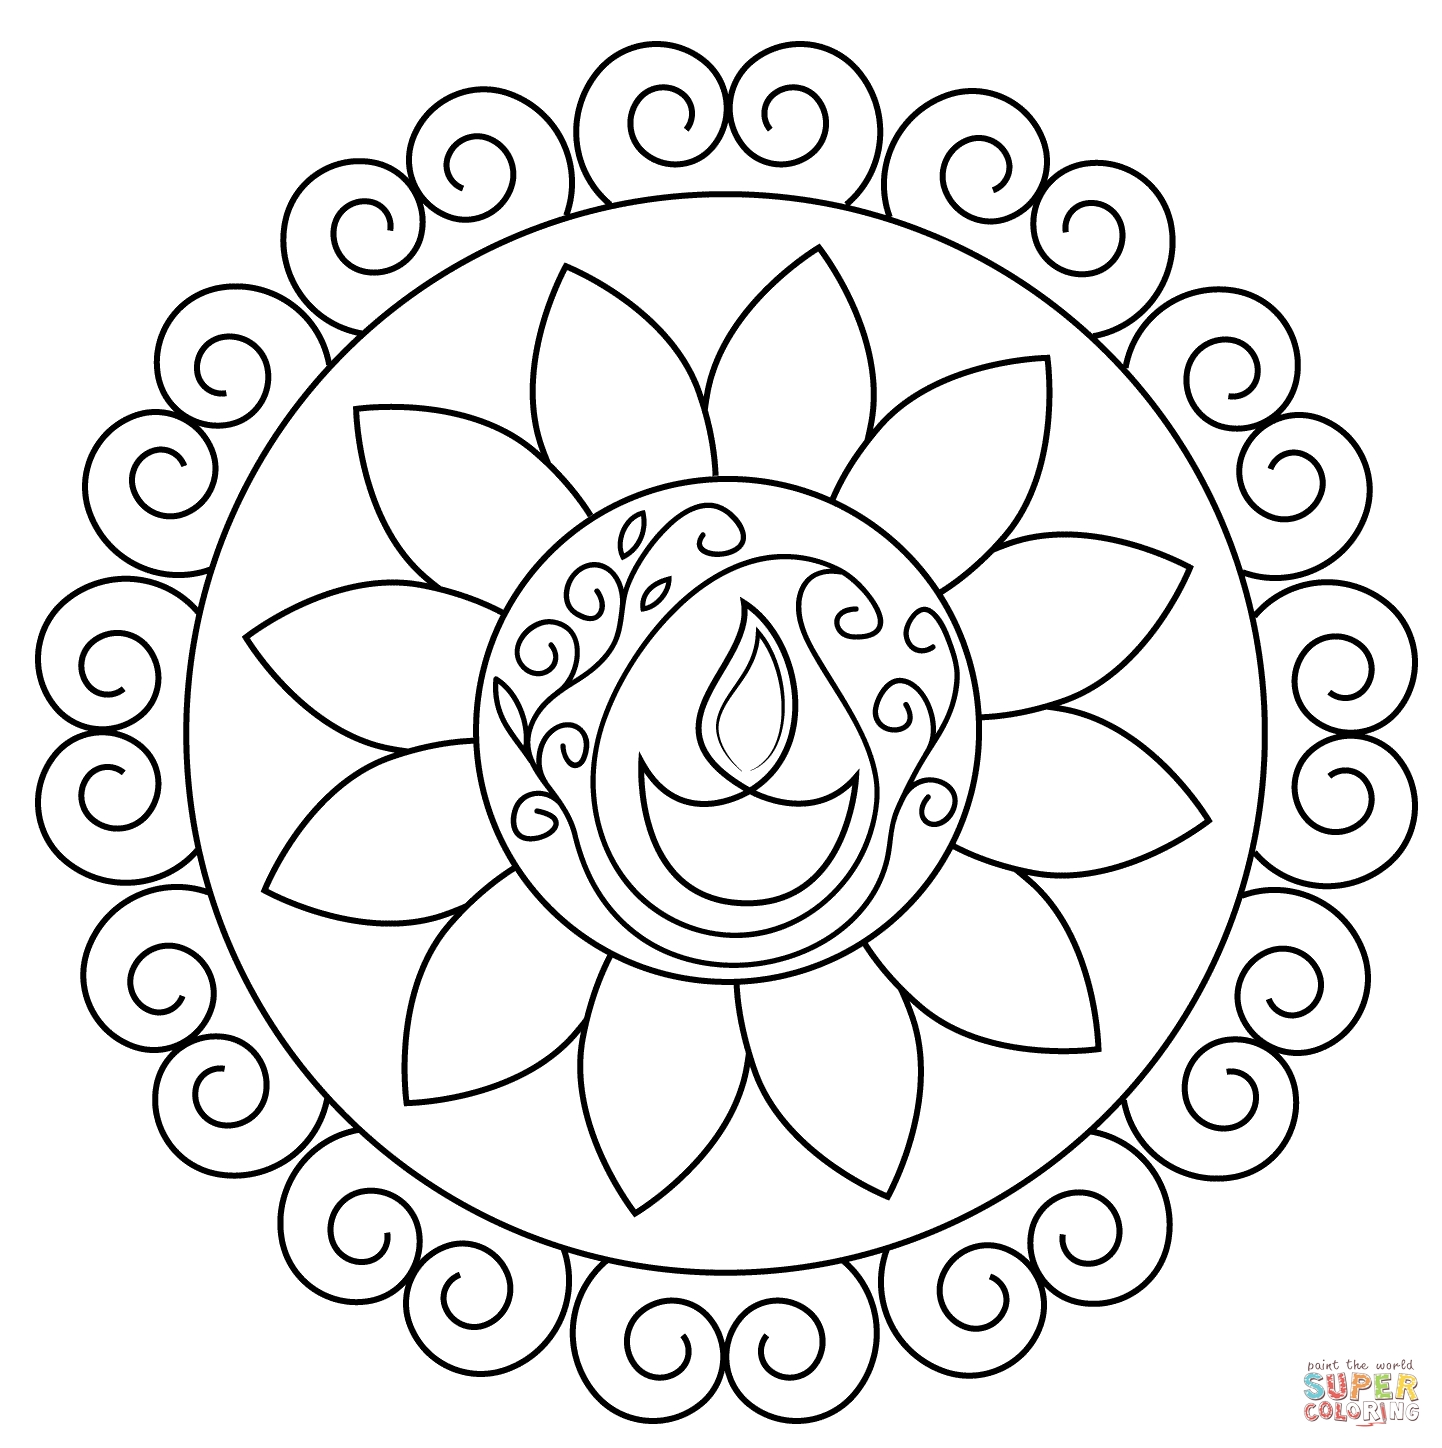 rangoli coloring pages - peacock rangoli coloring sheets sketch templates